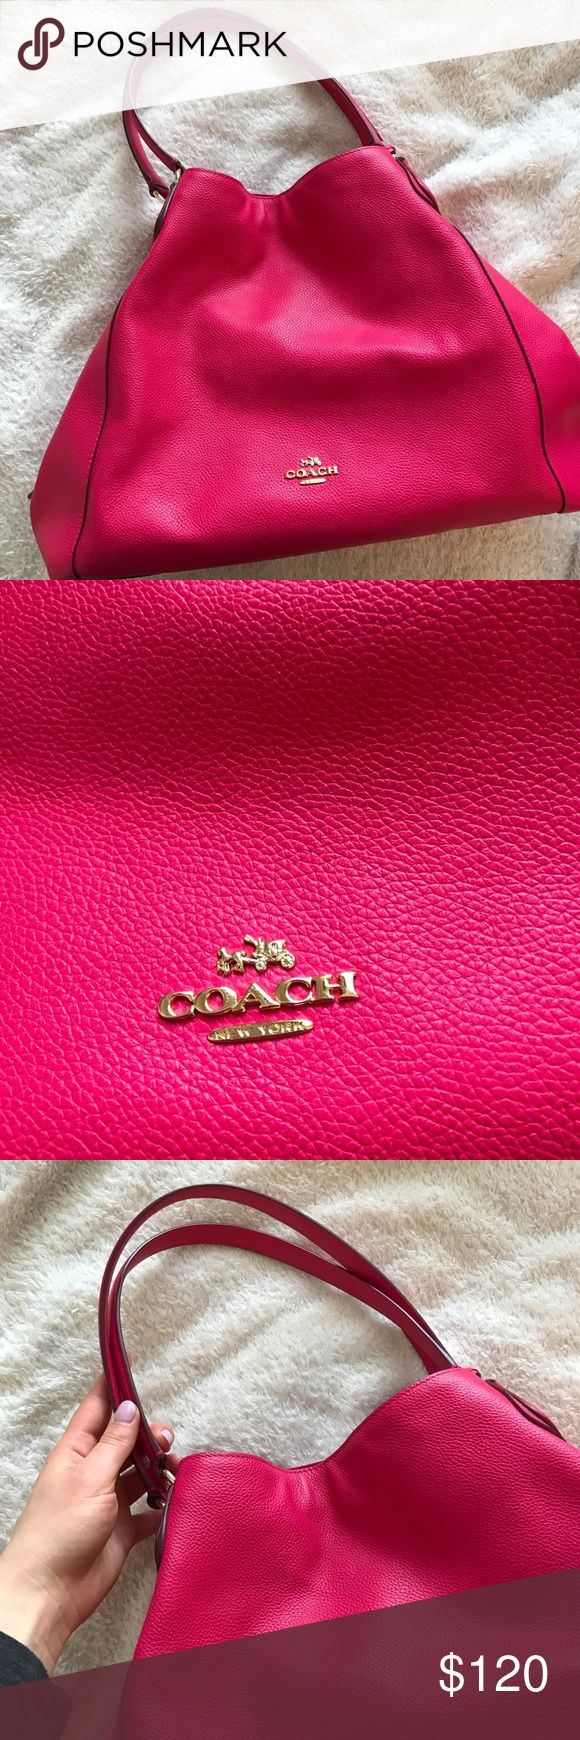 Fuchsia Hot Pink Coach Purse Worn a few times but flawless! Large and spacious. Offers welcome. Coach Bags Shoulder Bags